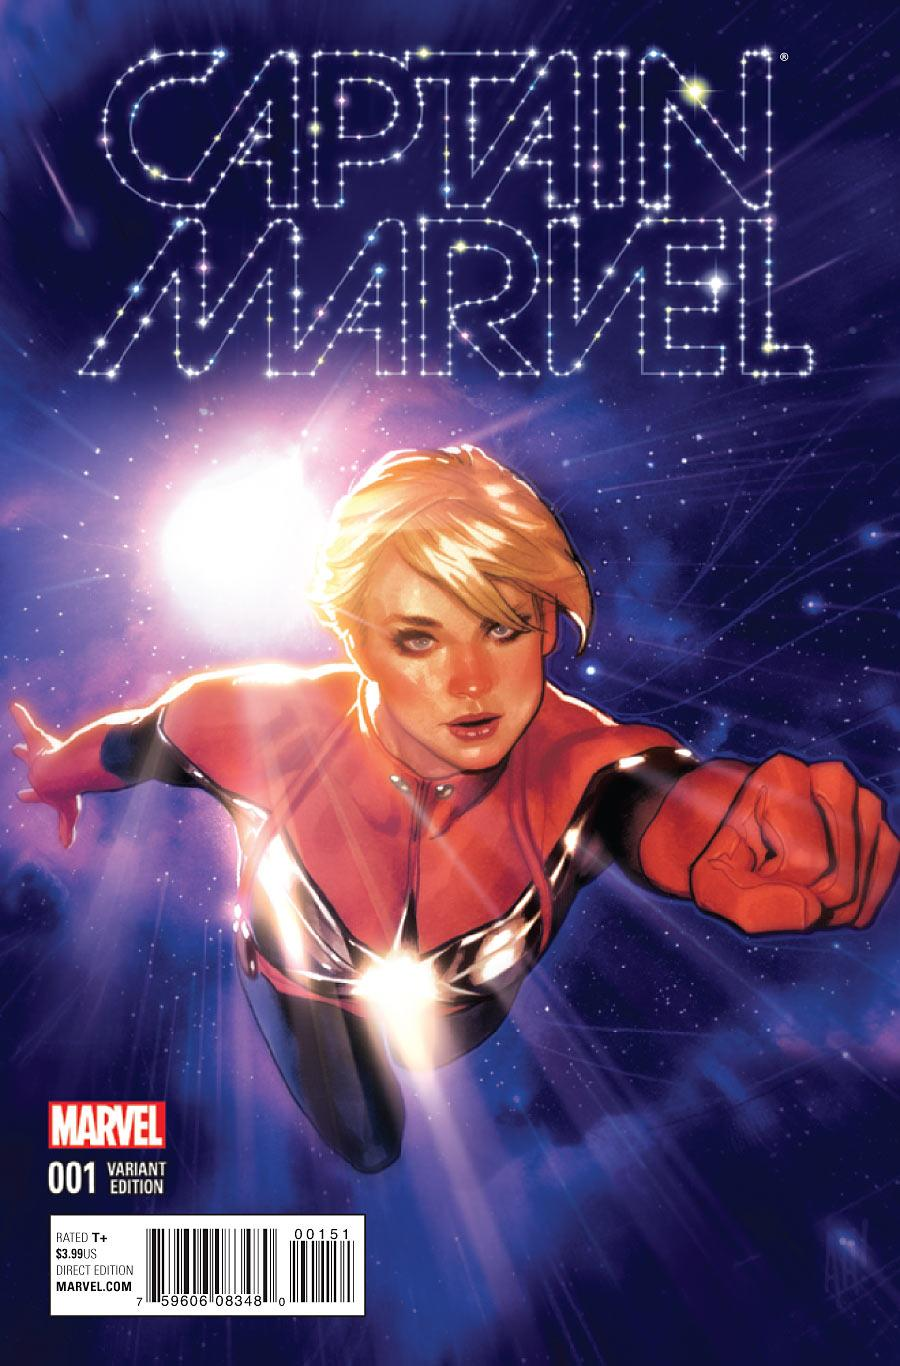 https://vignette.wikia.nocookie.net/marveldatabase/images/8/81/Captain_Marvel_Vol_9_1_Hughes_Variant.jpg/revision/latest?cb=20160114163302